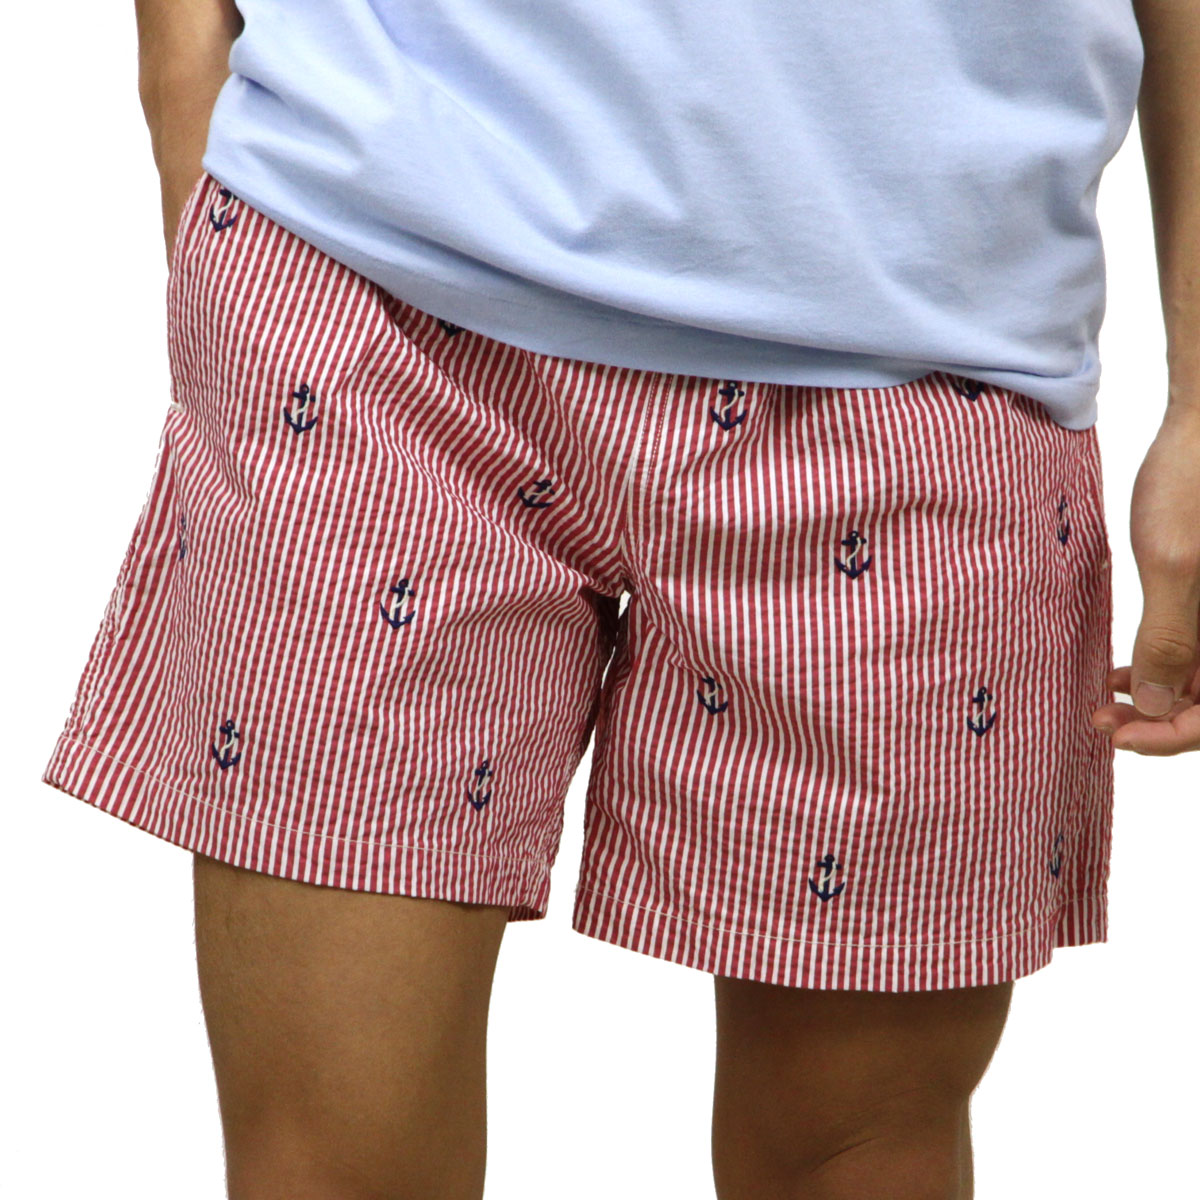 f18dcc94 Polo Ralph Lauren POLO RALPH LAUREN regular article men swimming underwear  6